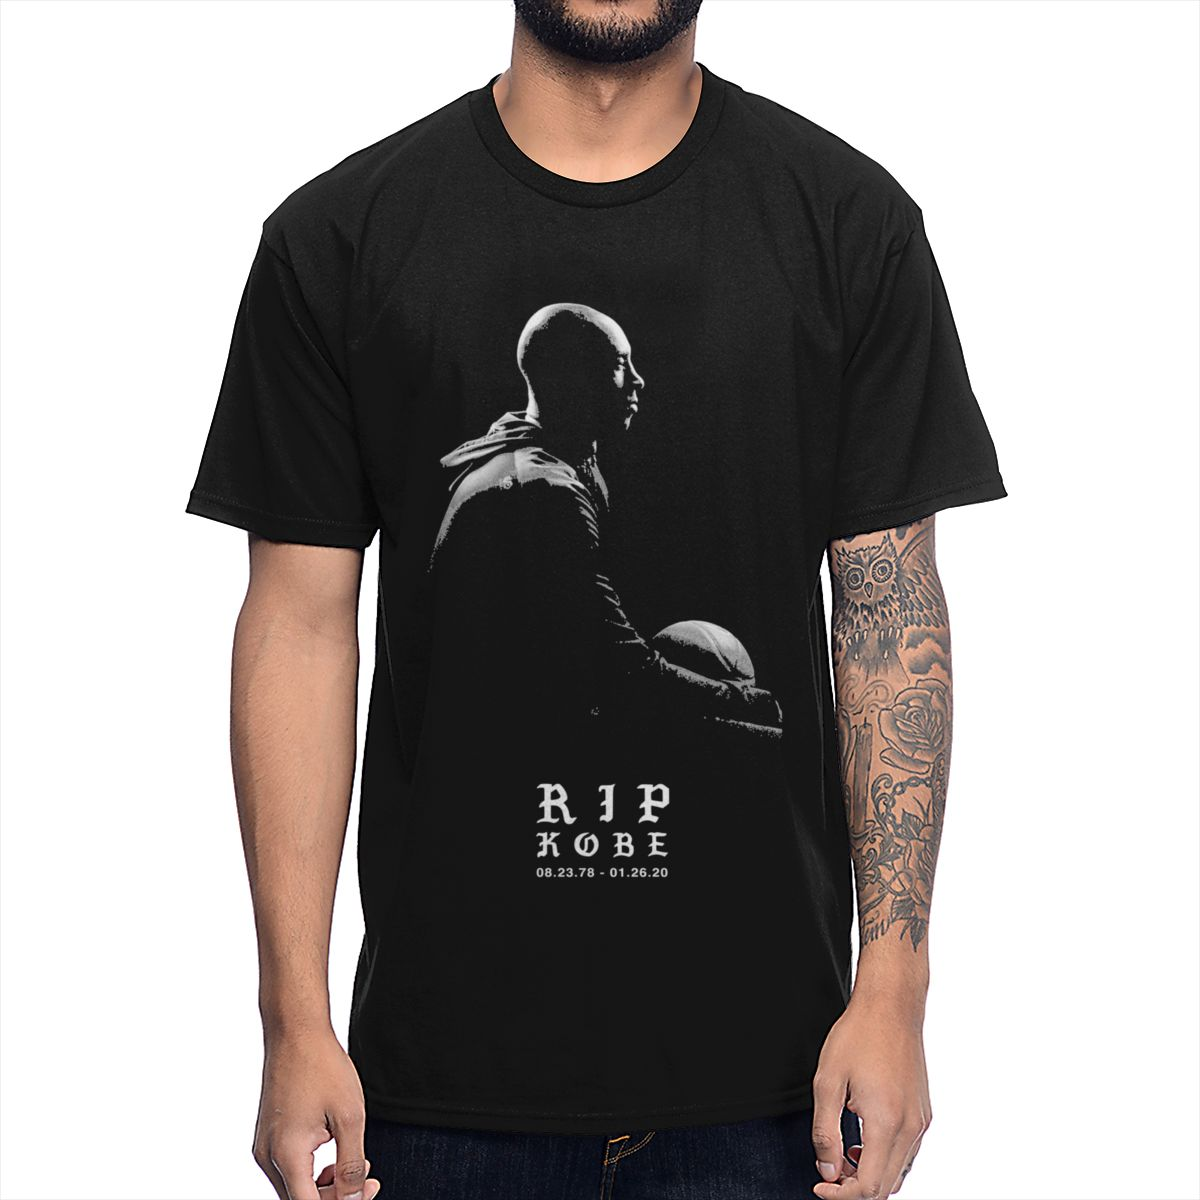 Kobe Bryant RIP T Shirt Black Mamba Out  Tee Shirt